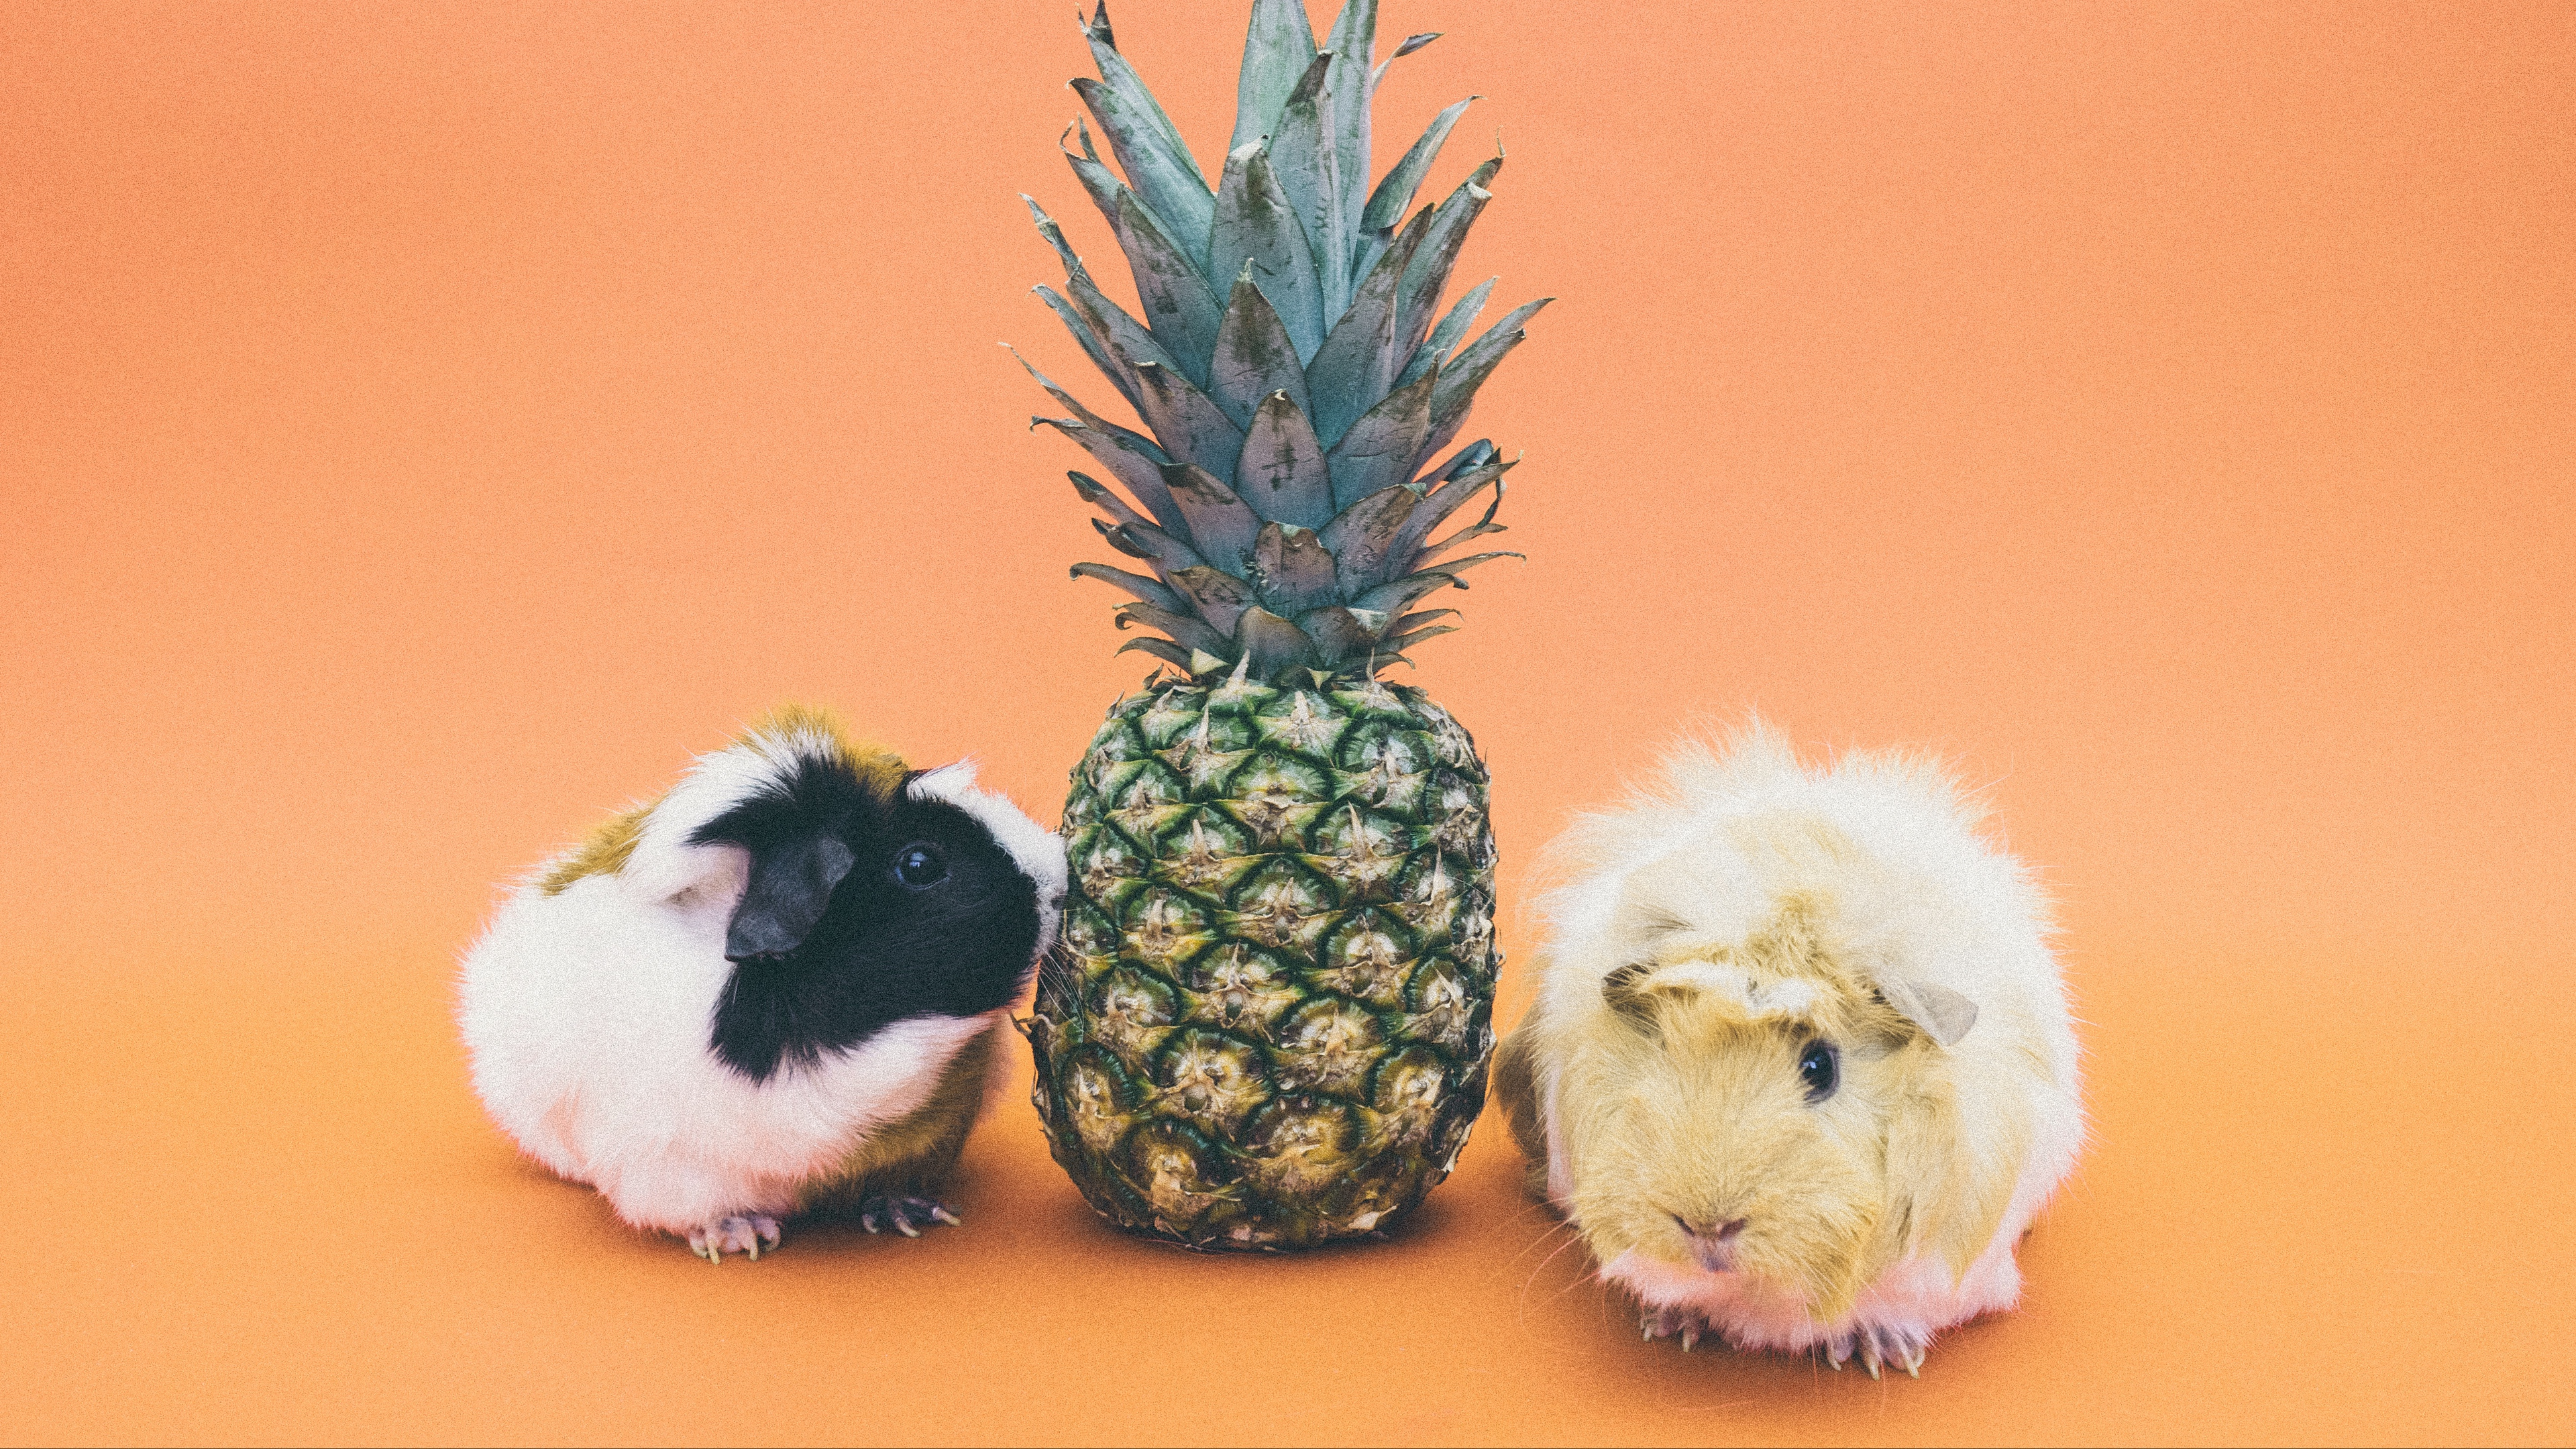 guinea pigs pineapple rodent 4k 1542243012 - guinea pigs, pineapple, rodent 4k - rodent, pineapple, guinea pigs